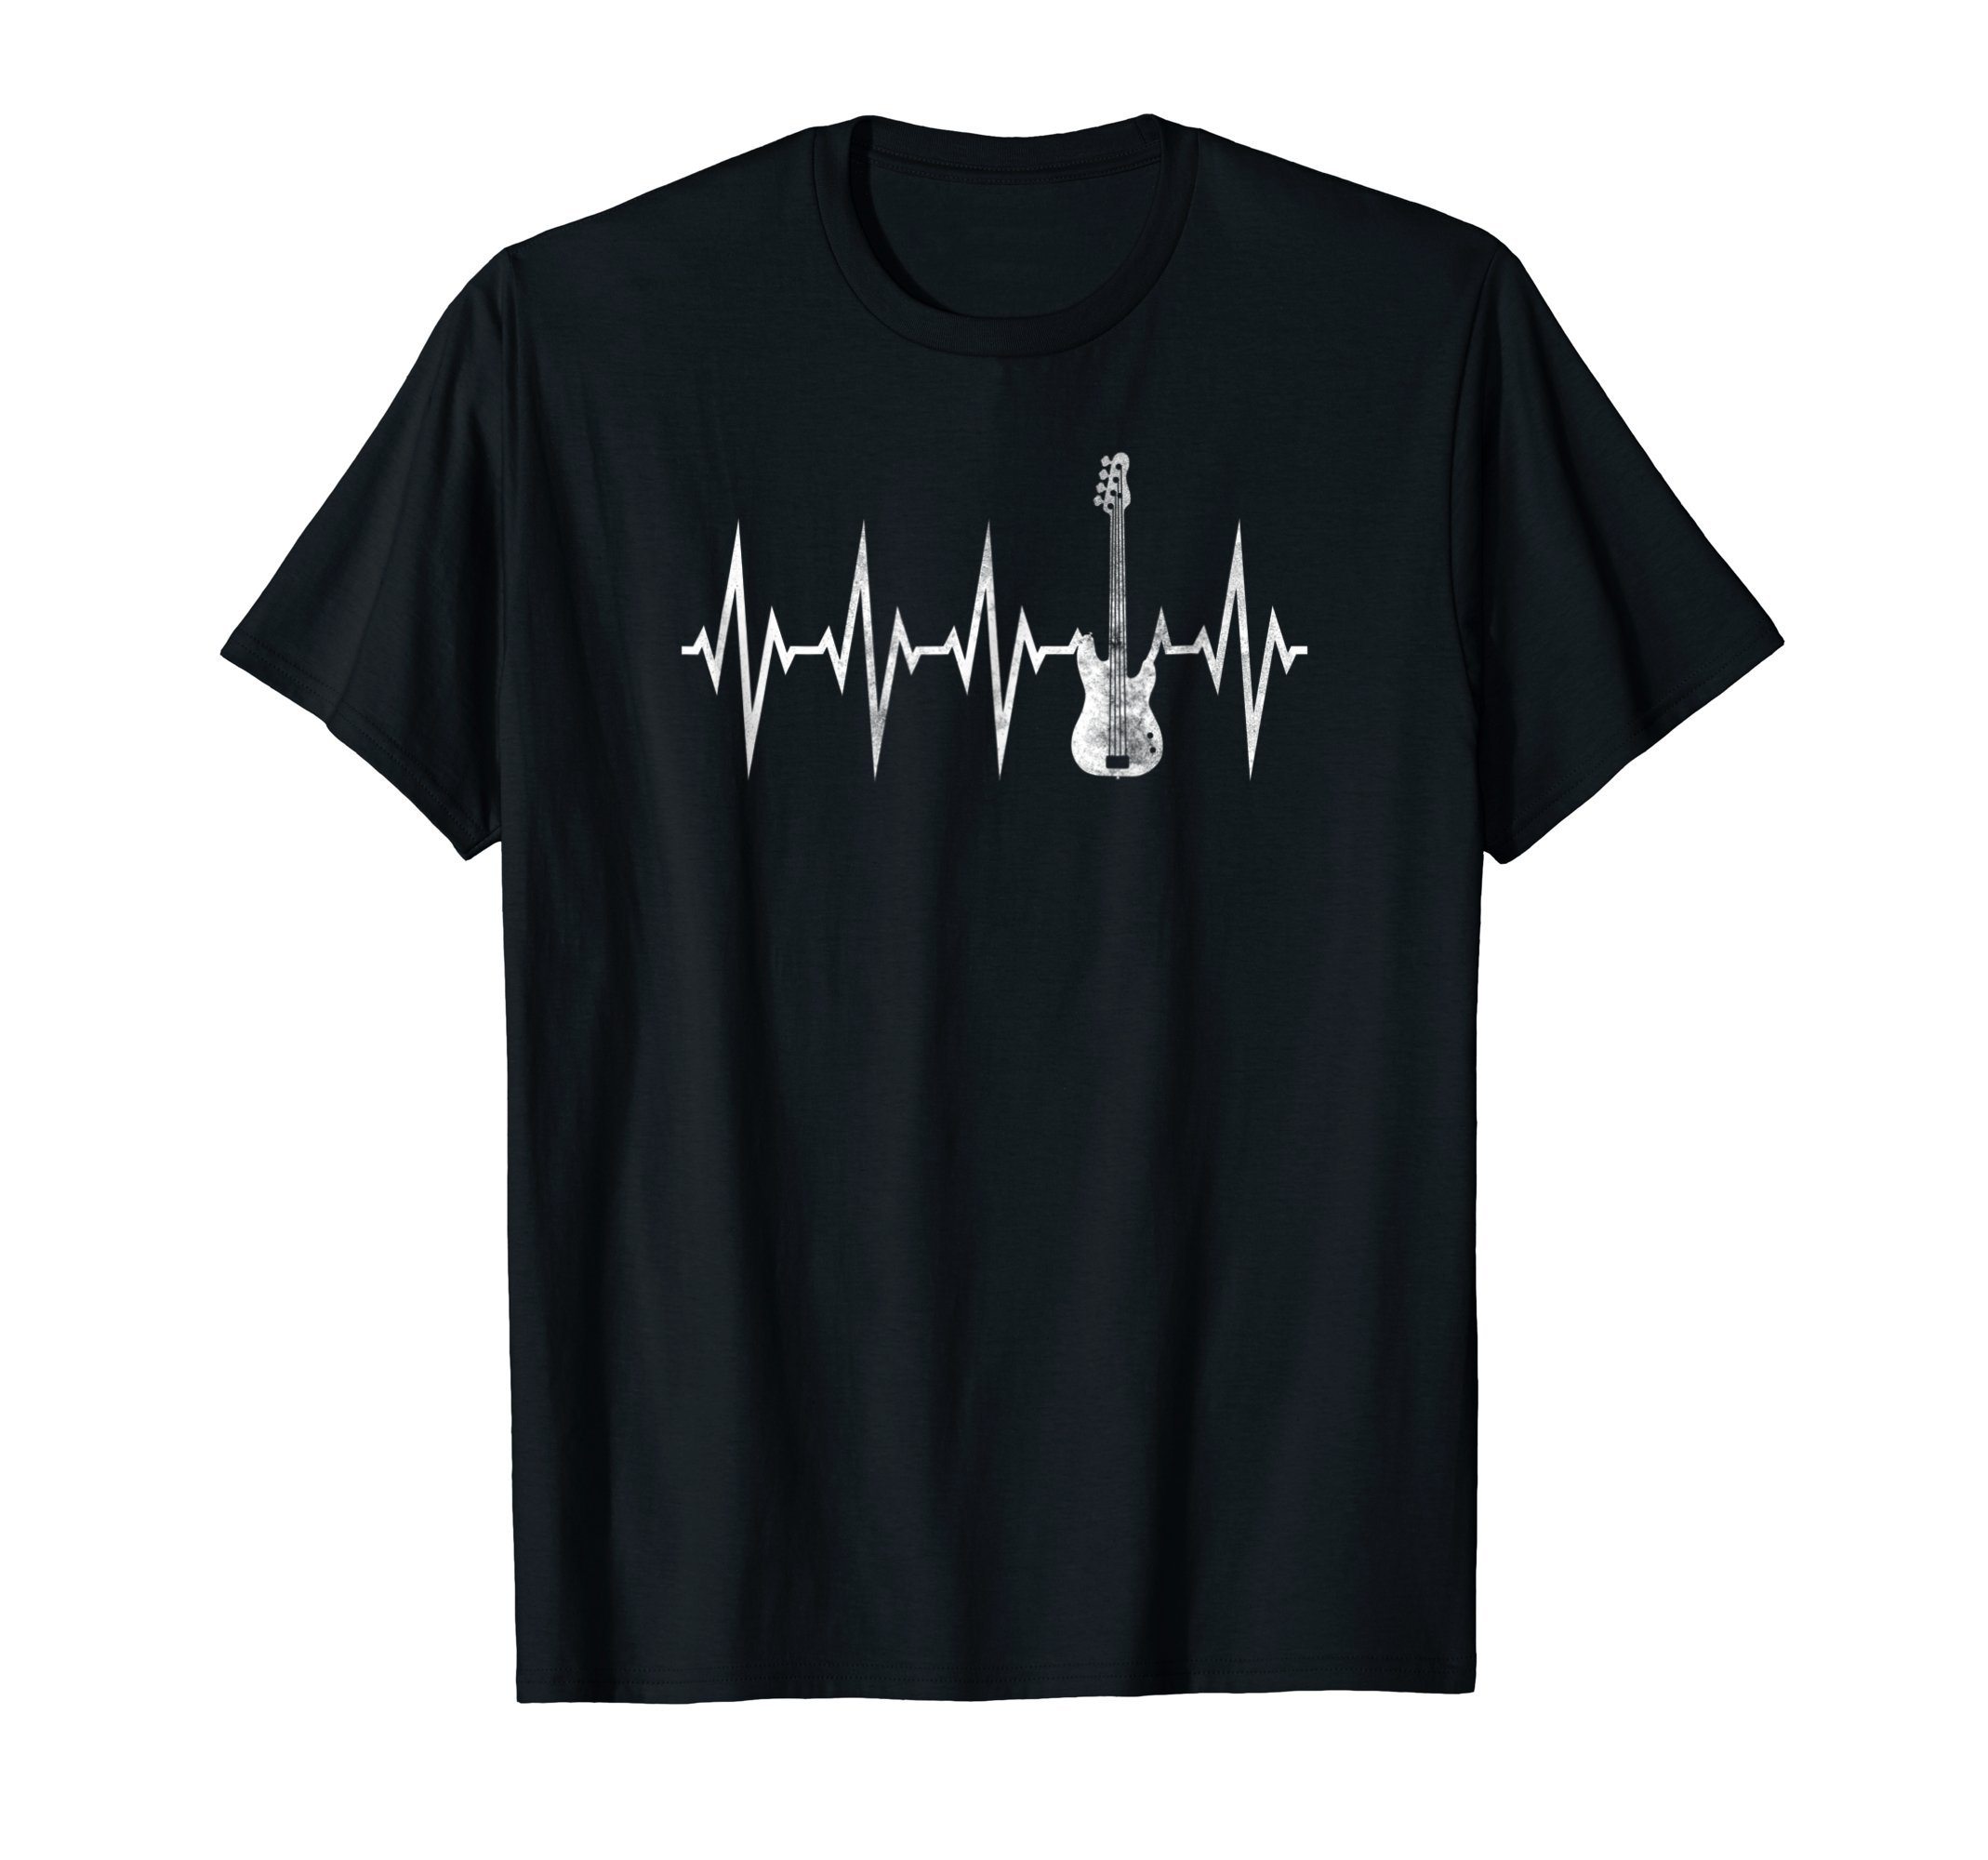 Crazy Heartbeat Electric Bass Guitar Rock Music Gift Shirt